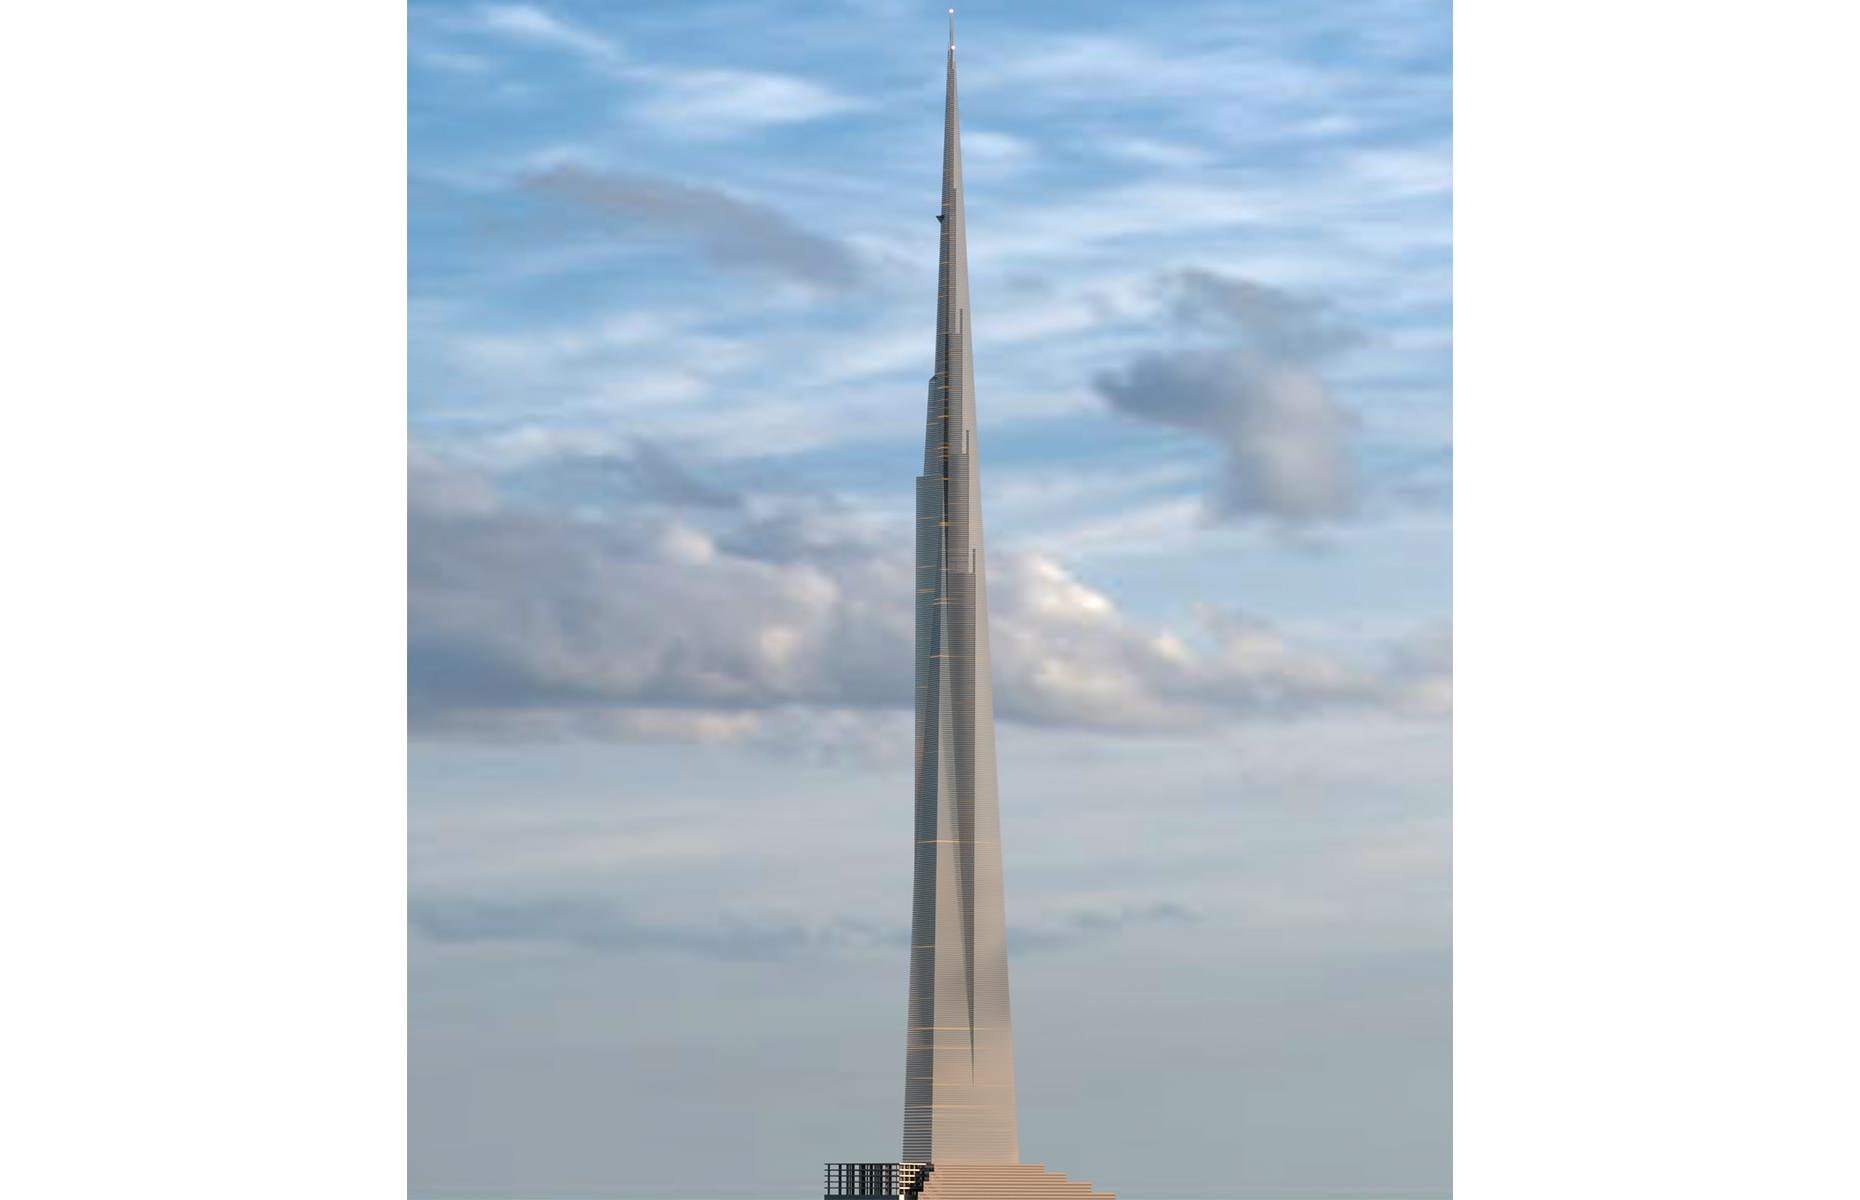 Slide 6 of 28: Had it been built, The Illinois (pictured) would have been one mile (1,600m) high, with more than 500 stories and room to house 100,000 people. Even today it would be the tallest building in the world, some 2,625 feet (800m) higher than Dubai's towering Burj Khalifa. Wright's plans never left the drawing board though, and the largest building in Chicago remains the diminutive 1,450-foot (442m) Willis Tower. Discover some of the world's tallest hotels here.